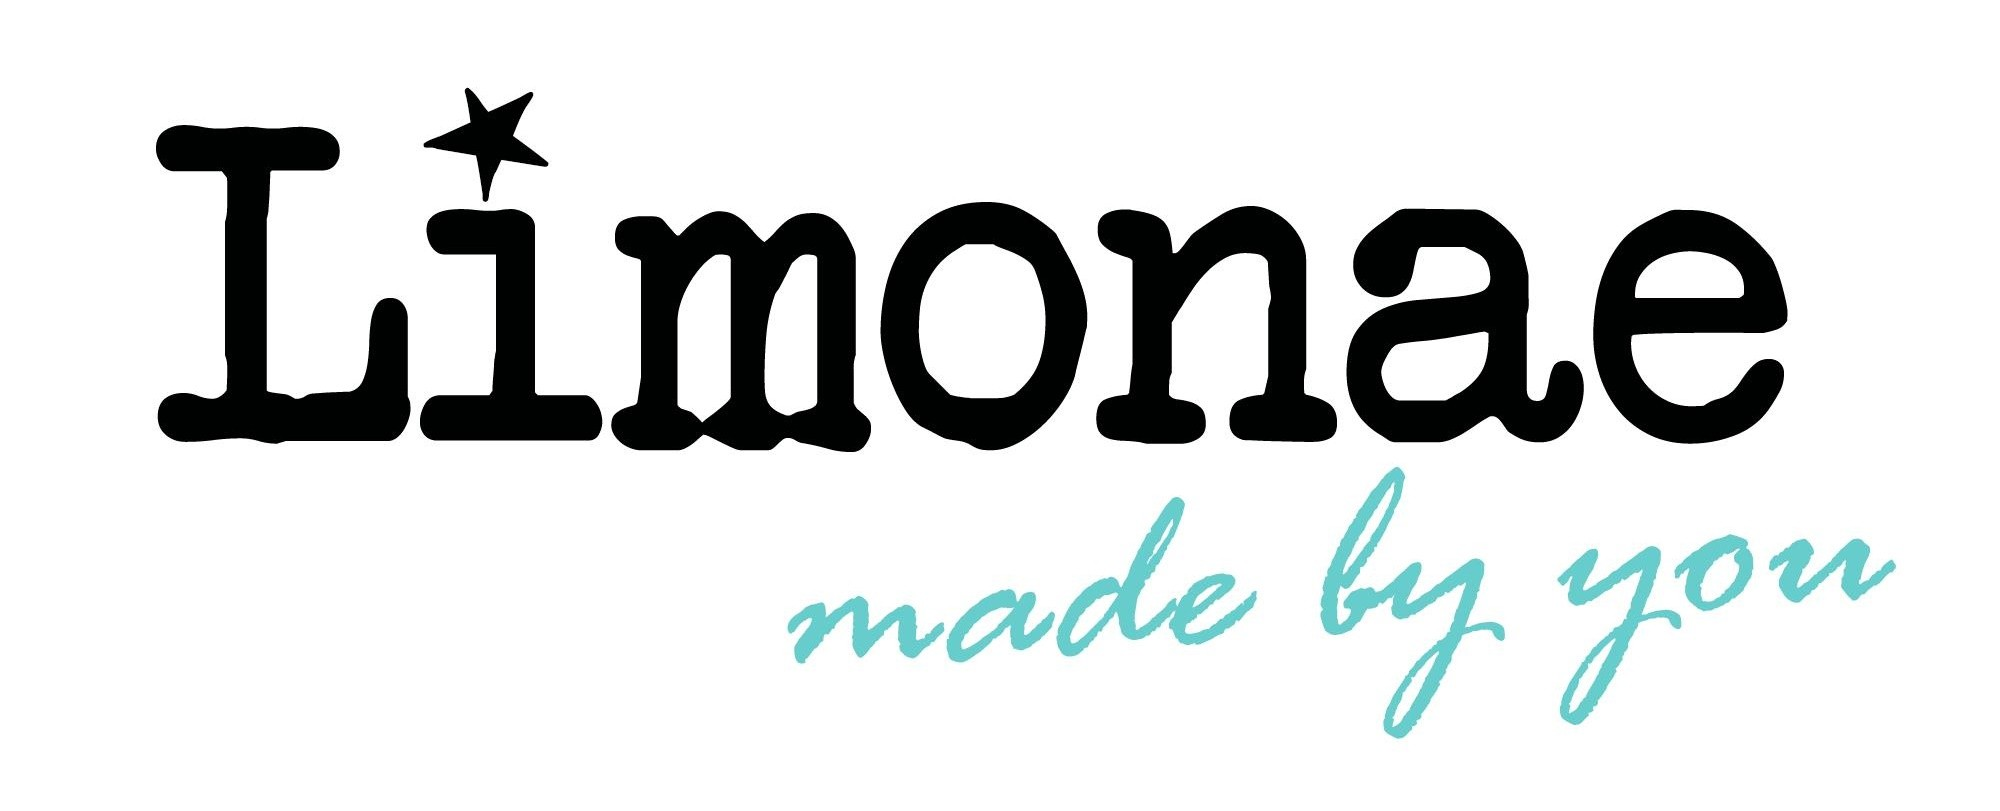 Limonae. Regalos personalizados en el momento!